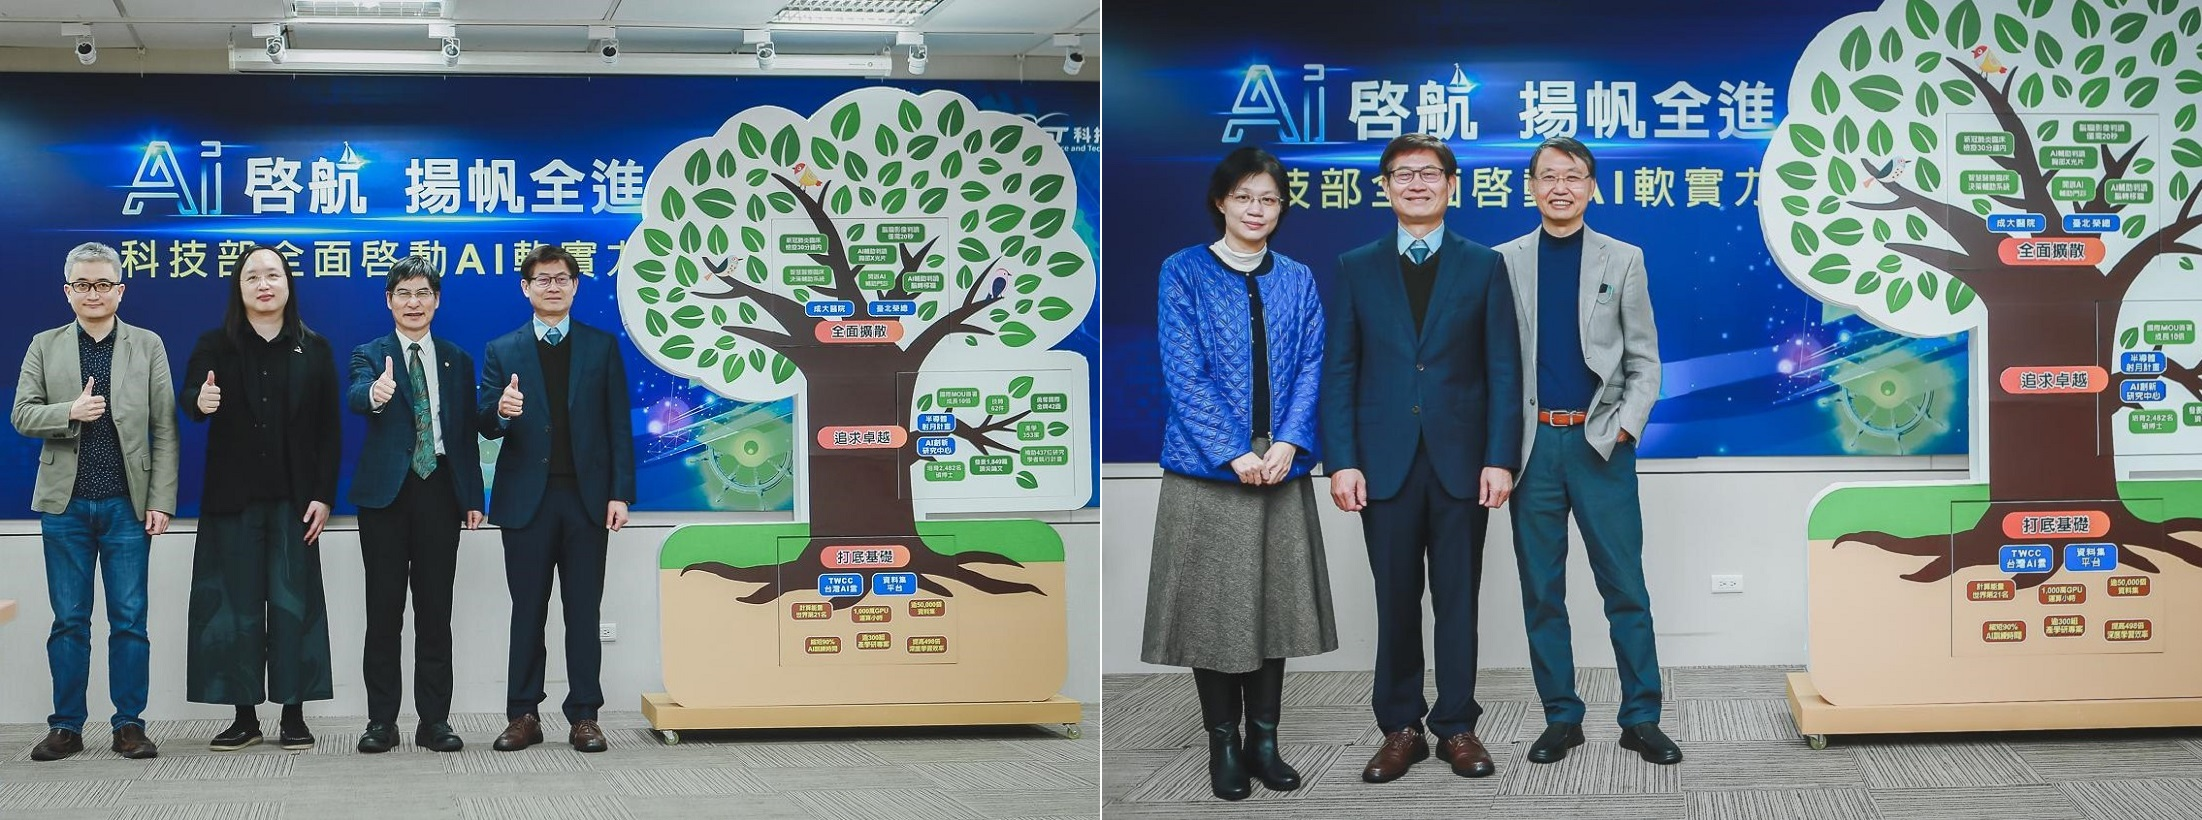 (left, from left) Ethan Tu, founder of Taiwan AI Labs, Minister Audrey Tang, Minister Liang-Gee Chen, Deputy Minister Yu-Chin Hsu of the Ministry of Science and Technology. (right, from left) Director General Hsiu-Ya Yang of the Department of Foresight and Innovation Policies and Deputy Minister Yu-Chin Hsu of the Ministry of Science and Technology and Shepherd Shi, Director-General of the National Center for High-performance Computing.